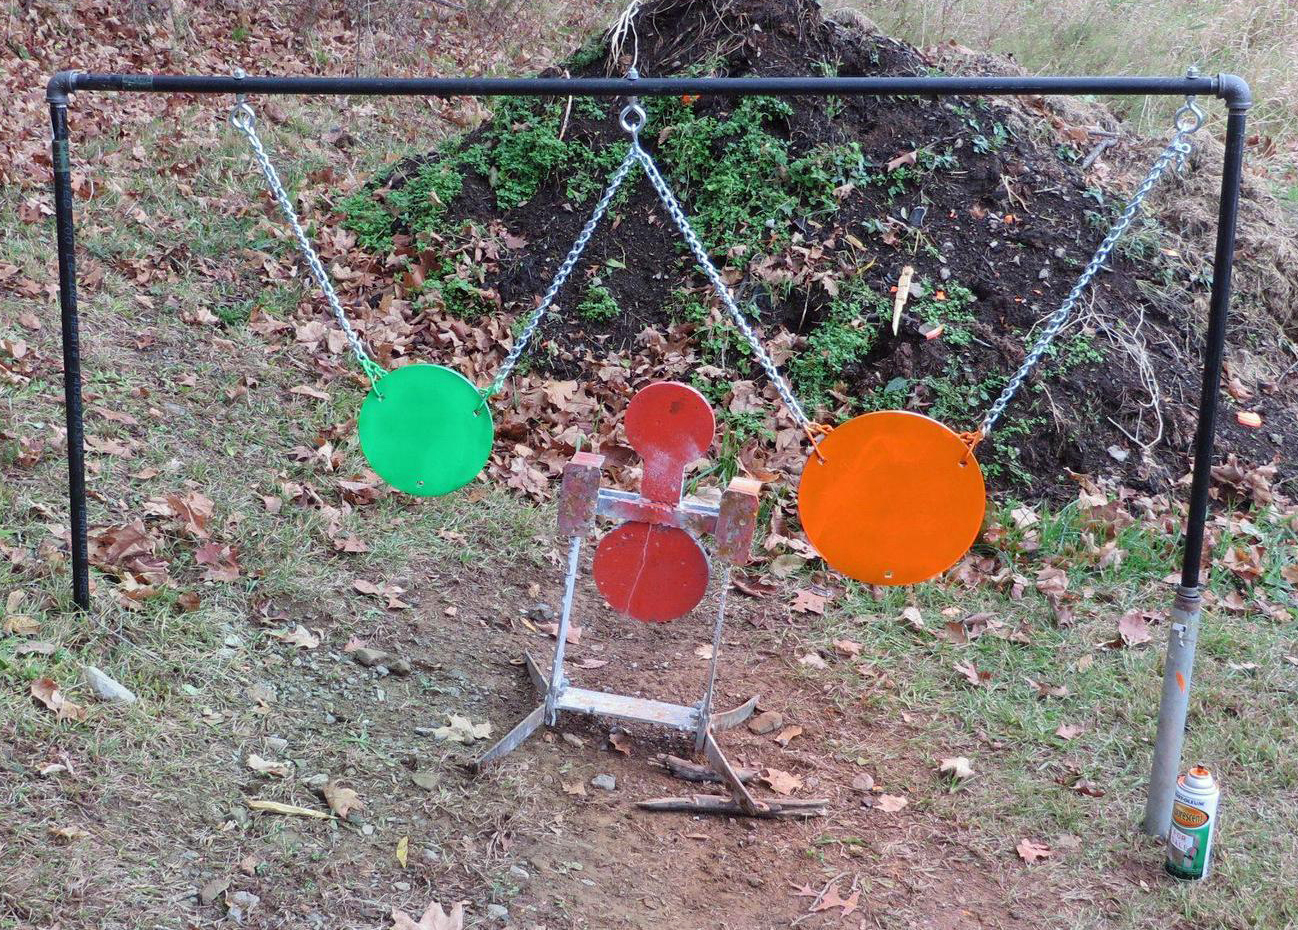 DIY: A Simple Target Stand for Your Home Range